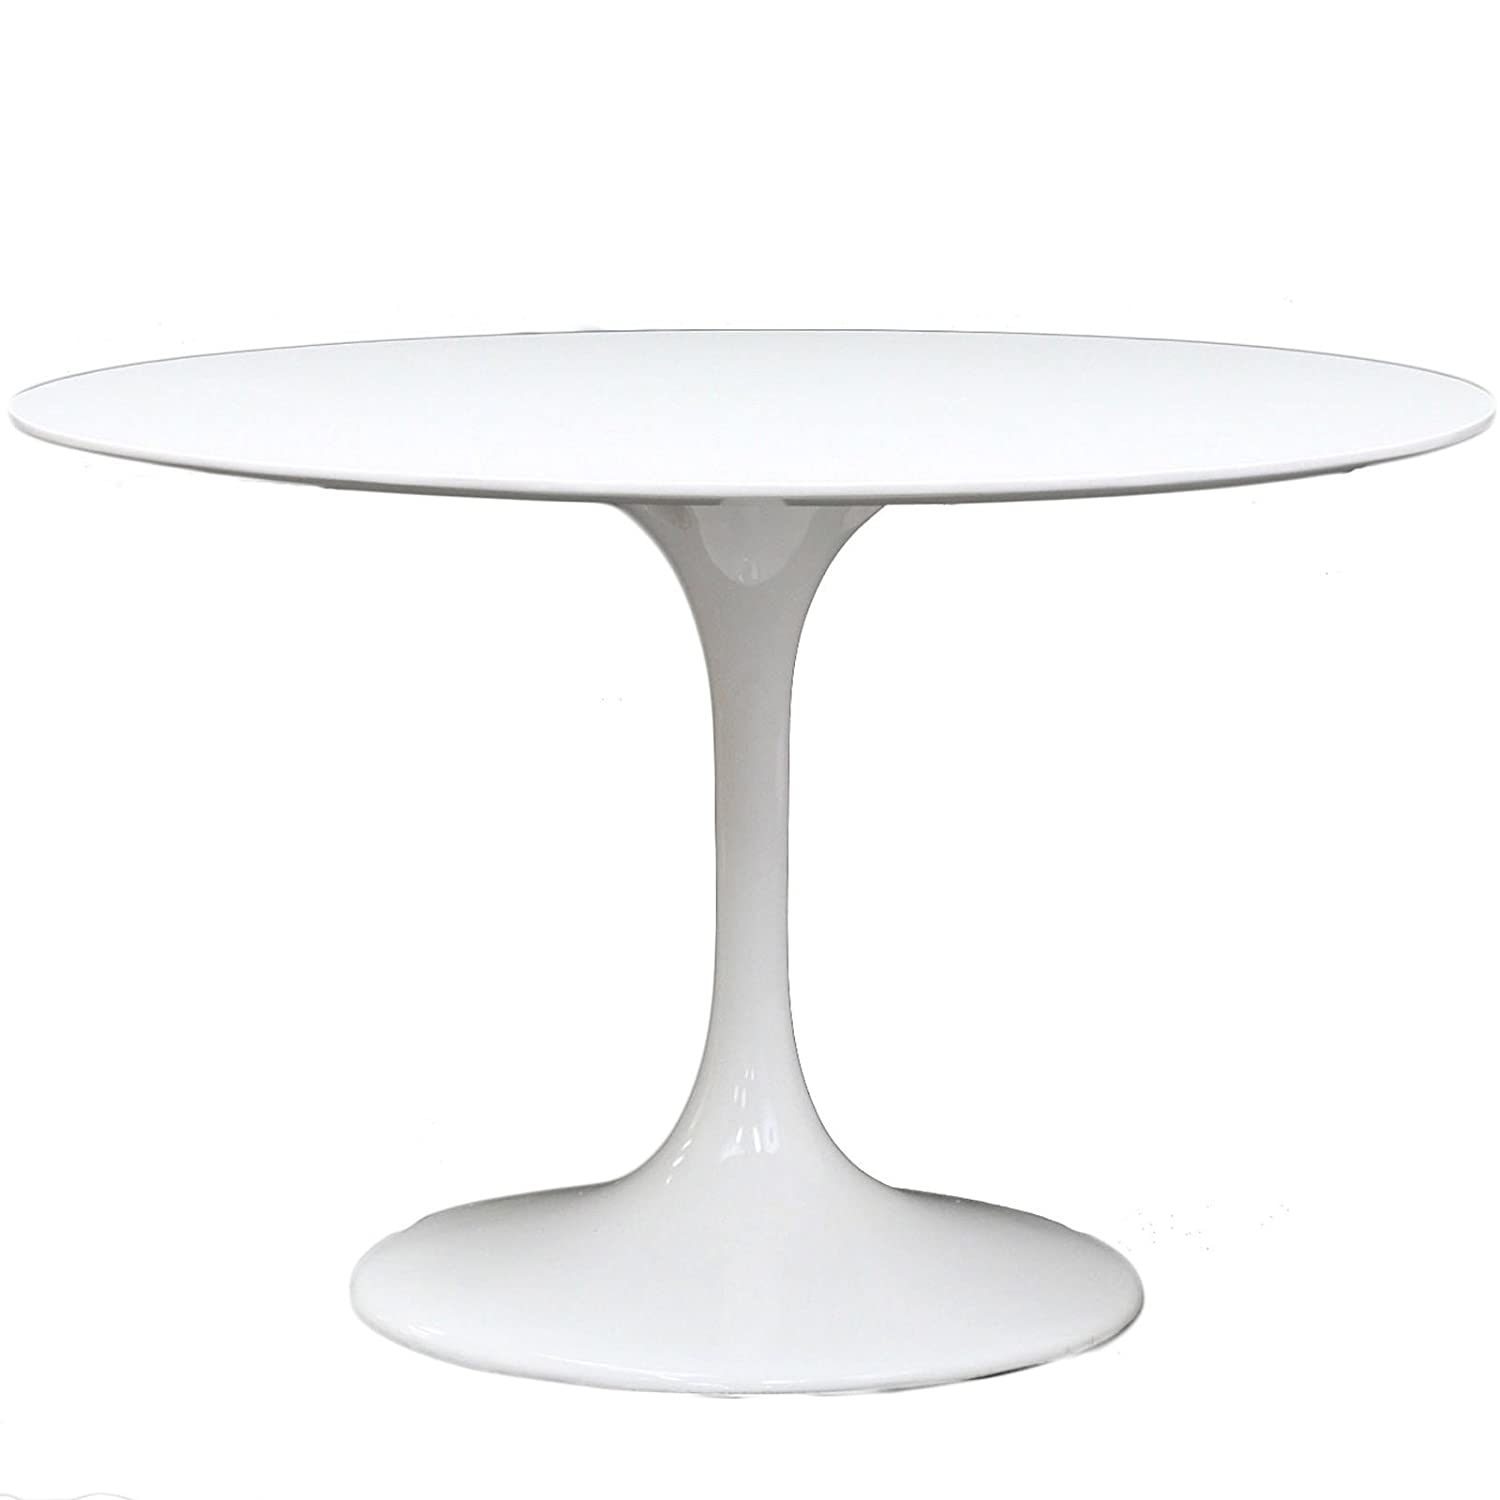 Amazoncom Modway Eero Saarinen Style Tulip Dining Table - Saarinen table base for sale